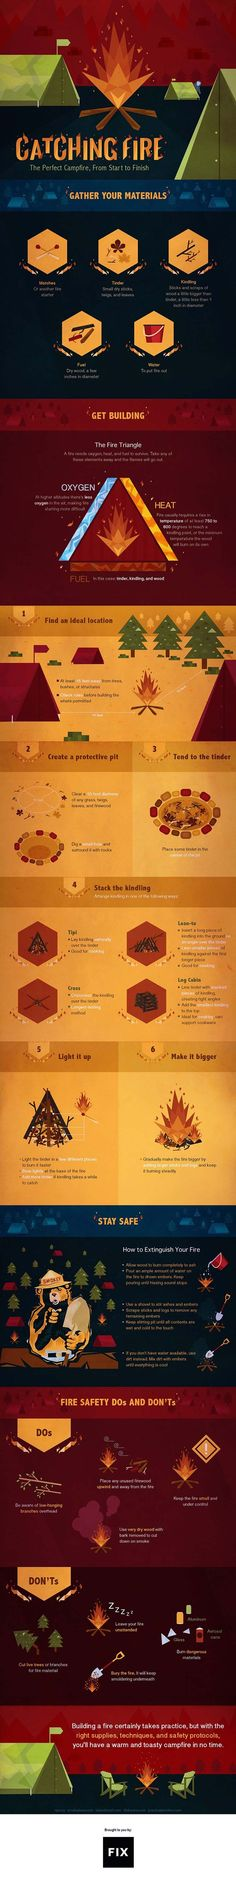 Build a Fire the Right Way   Fire Safety Do's And Dont's by Survival Life at http://survivallife.com/build-a-fire-the-right-way/